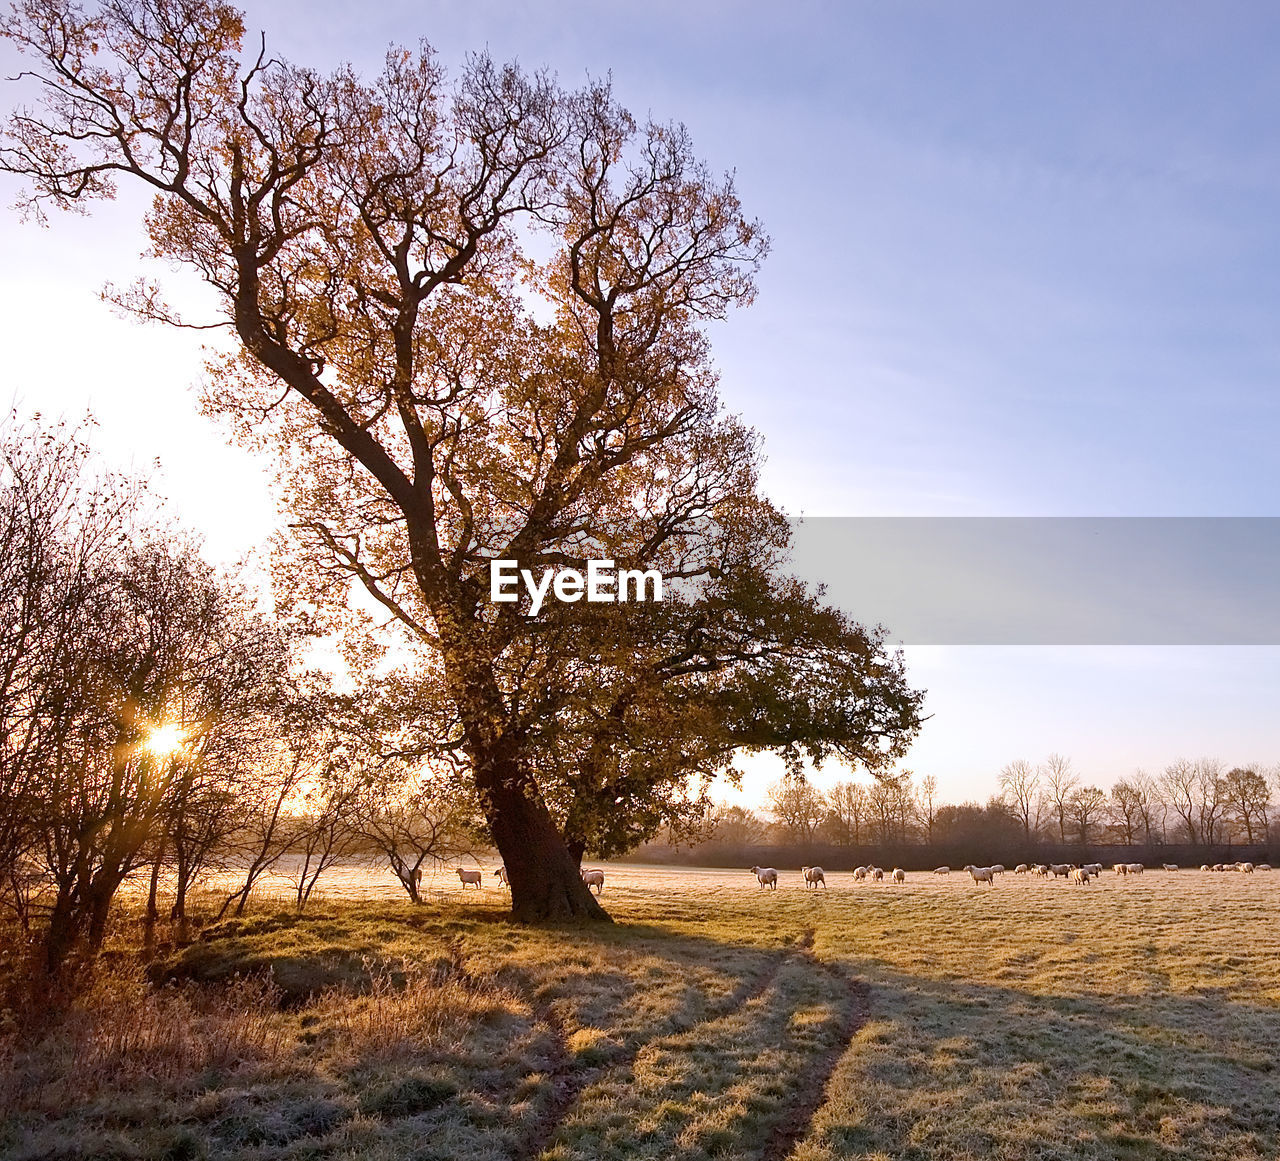 sky, plant, tree, field, beauty in nature, tranquility, tranquil scene, landscape, nature, land, environment, scenics - nature, no people, sunlight, growth, non-urban scene, outdoors, day, sun, grass